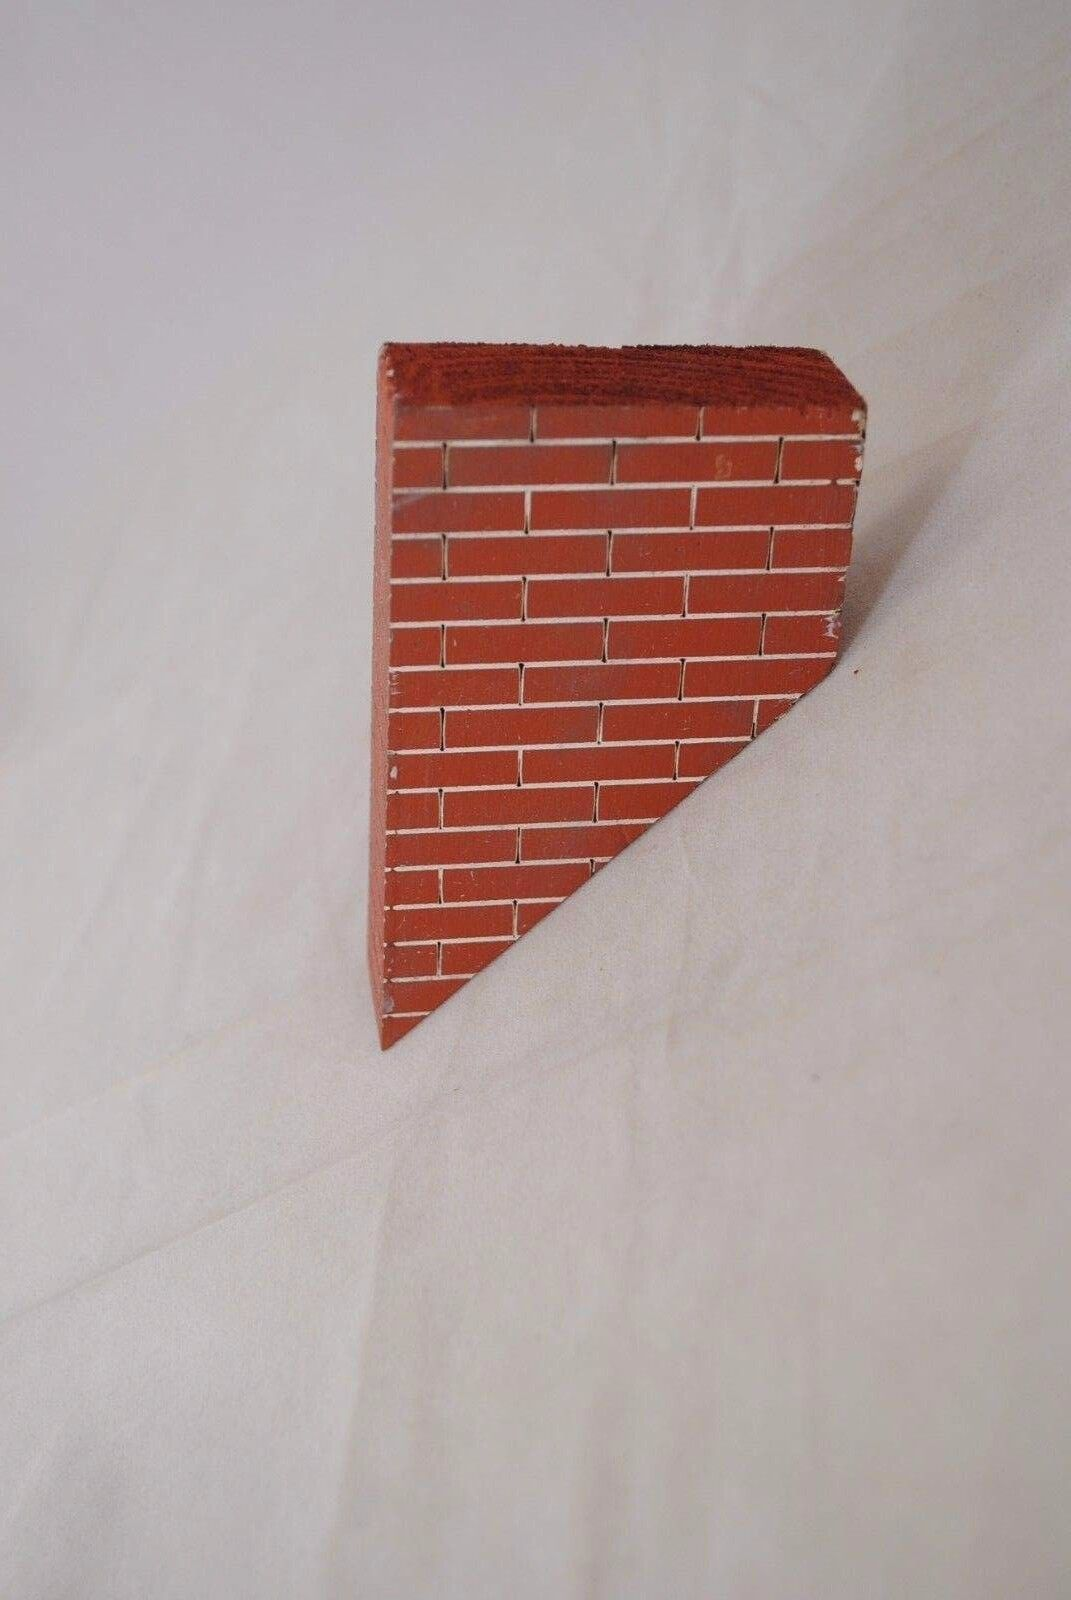 Chimney Roof-Top dollhouse miniature 1:12 scale USA made light 503